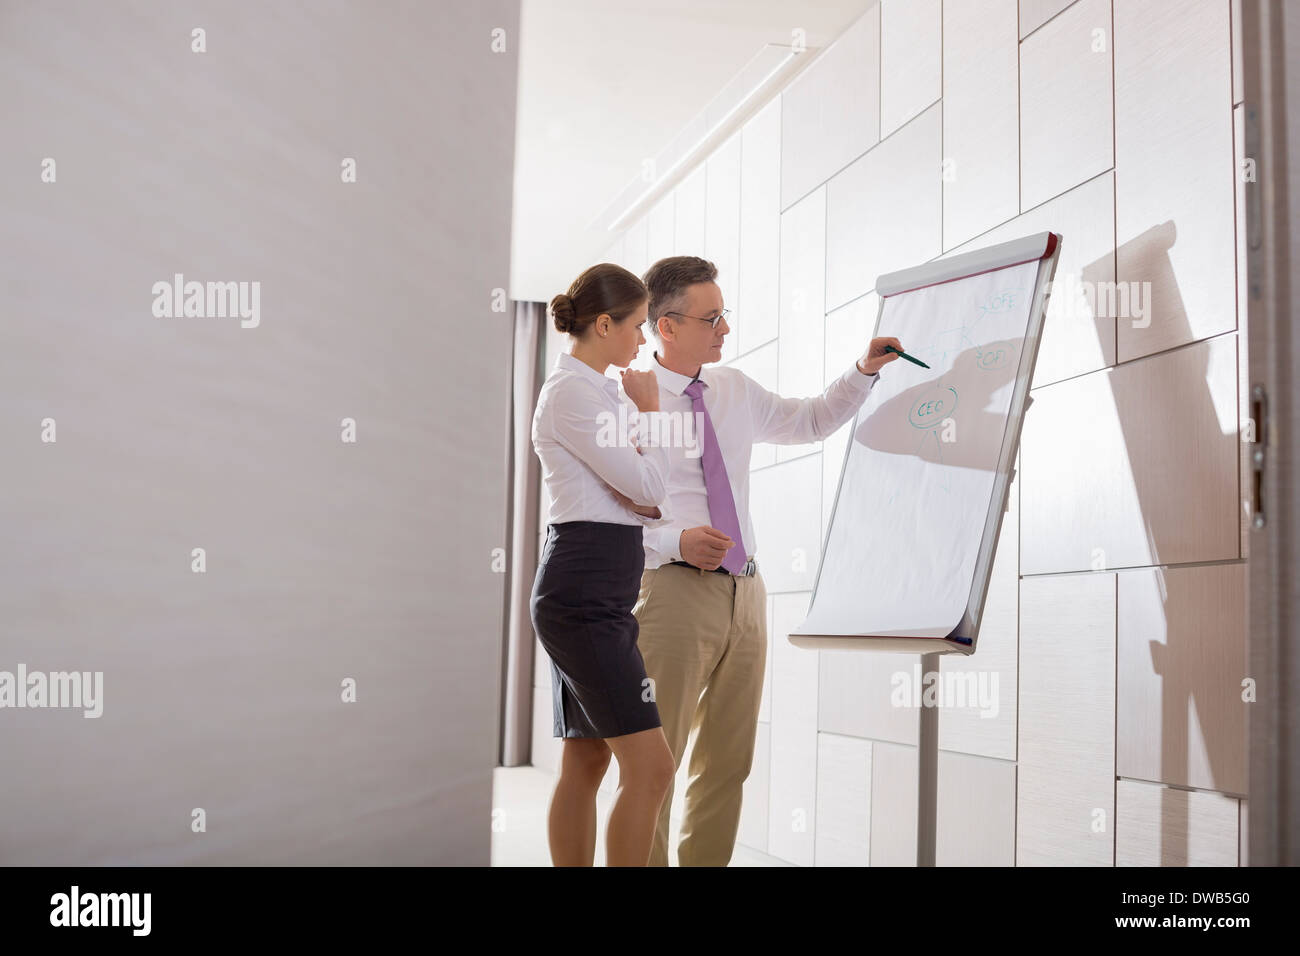 Business colleagues planning for presentation in office - Stock Image